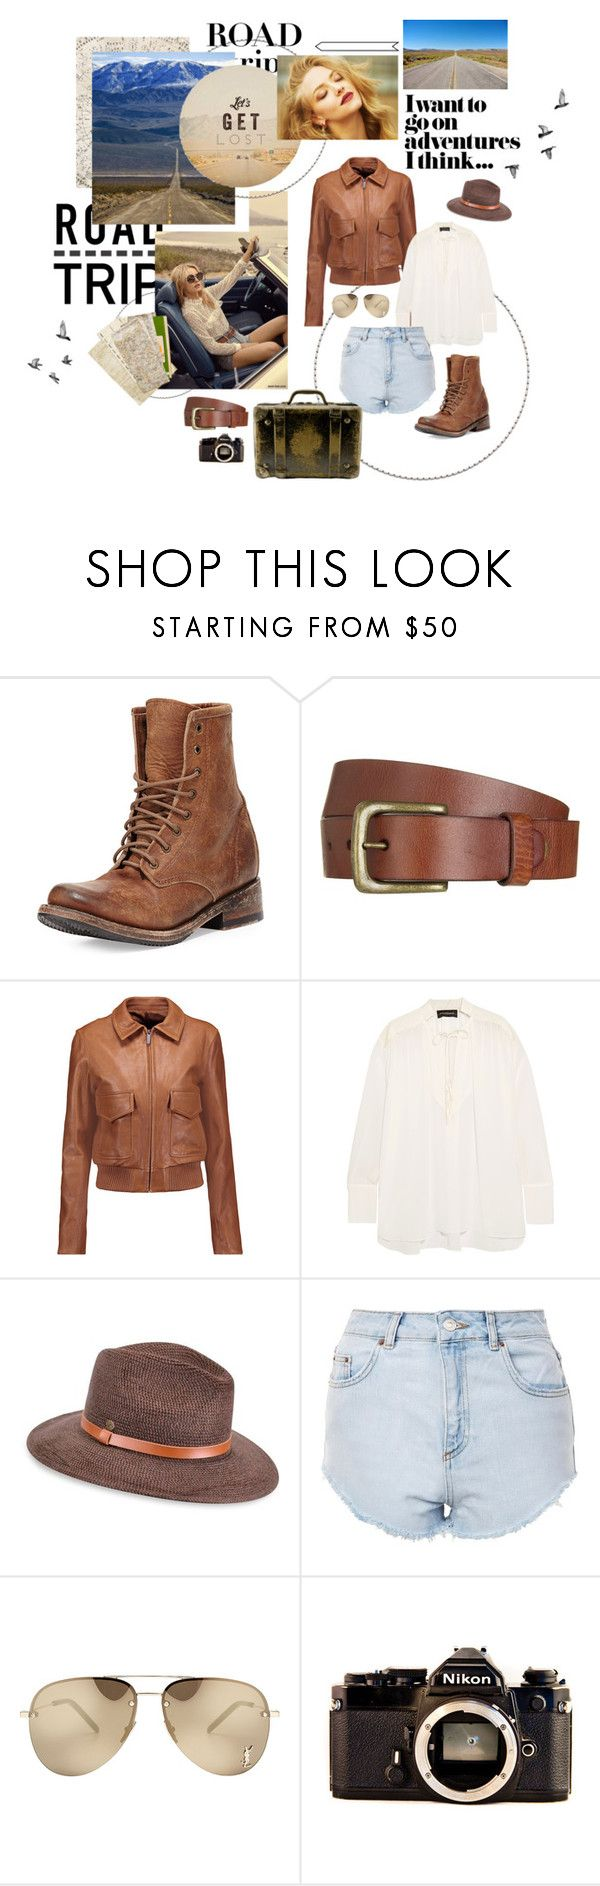 """""""The road goes ever on and on - Road trip"""" by svenjadobbert ❤ liked on Polyvore featuring Freebird, Will Leather Goods, Helmut Lang, By Malene Birger, Karen Kane, Topshop, GET LOST, Hai, Yves Saint Laurent and Nikon"""